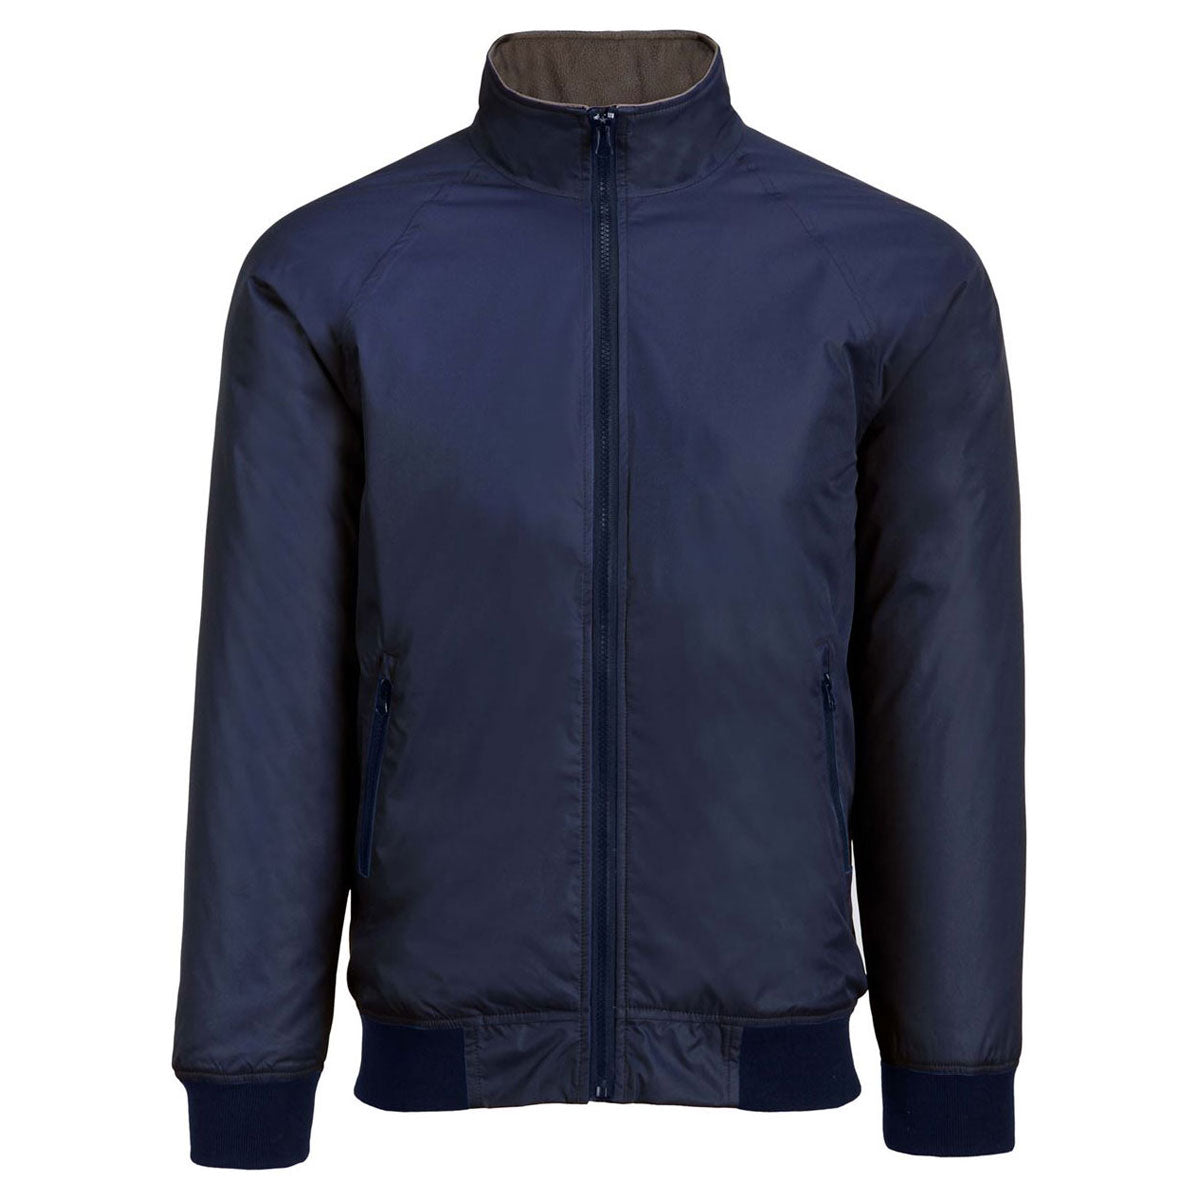 Landway Men's Navy New Three Seasons Fleece Jacket